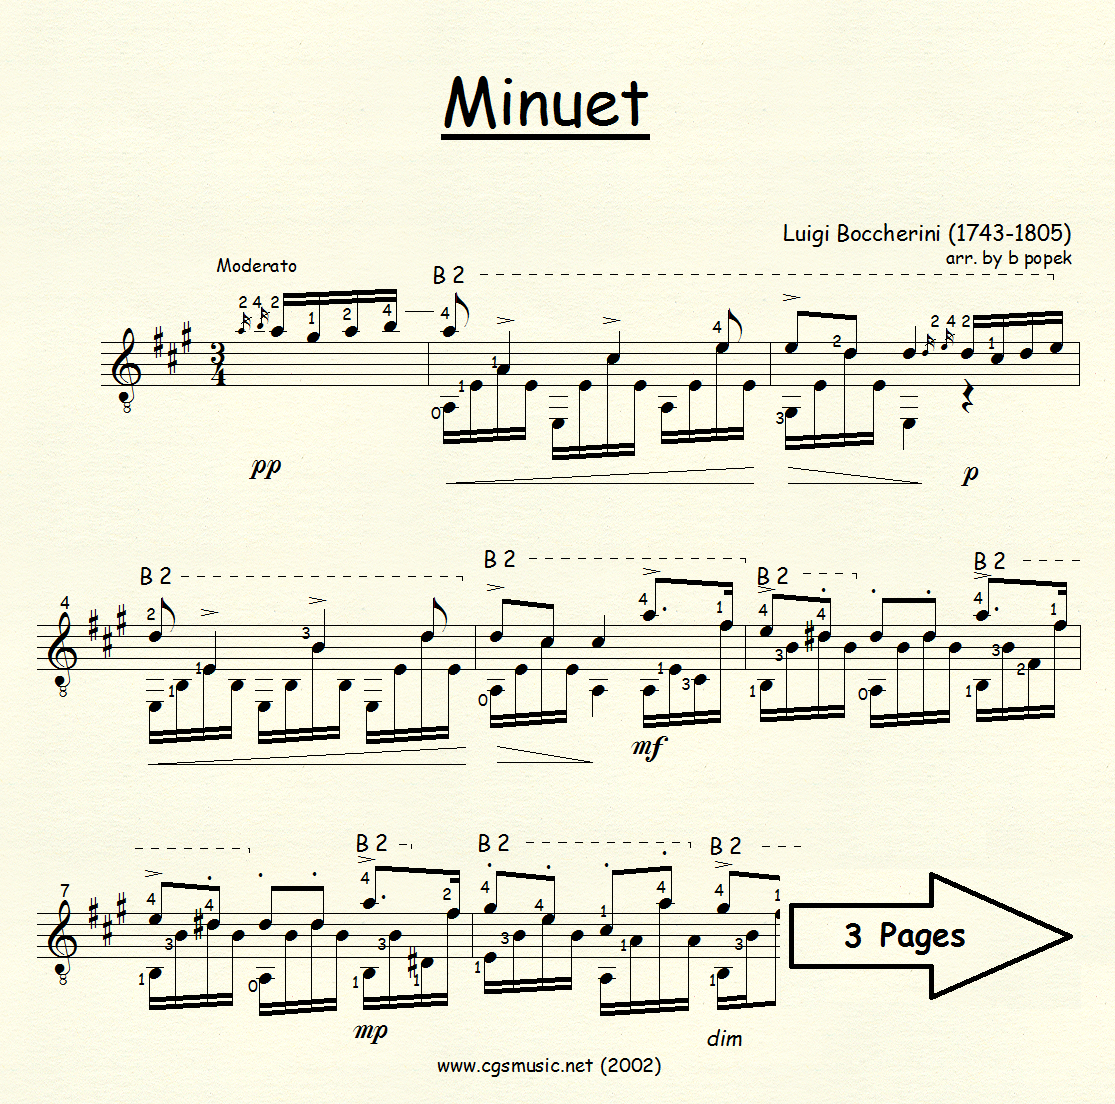 Minuet (Boccherini) for Classical Guitar in Standard Notation